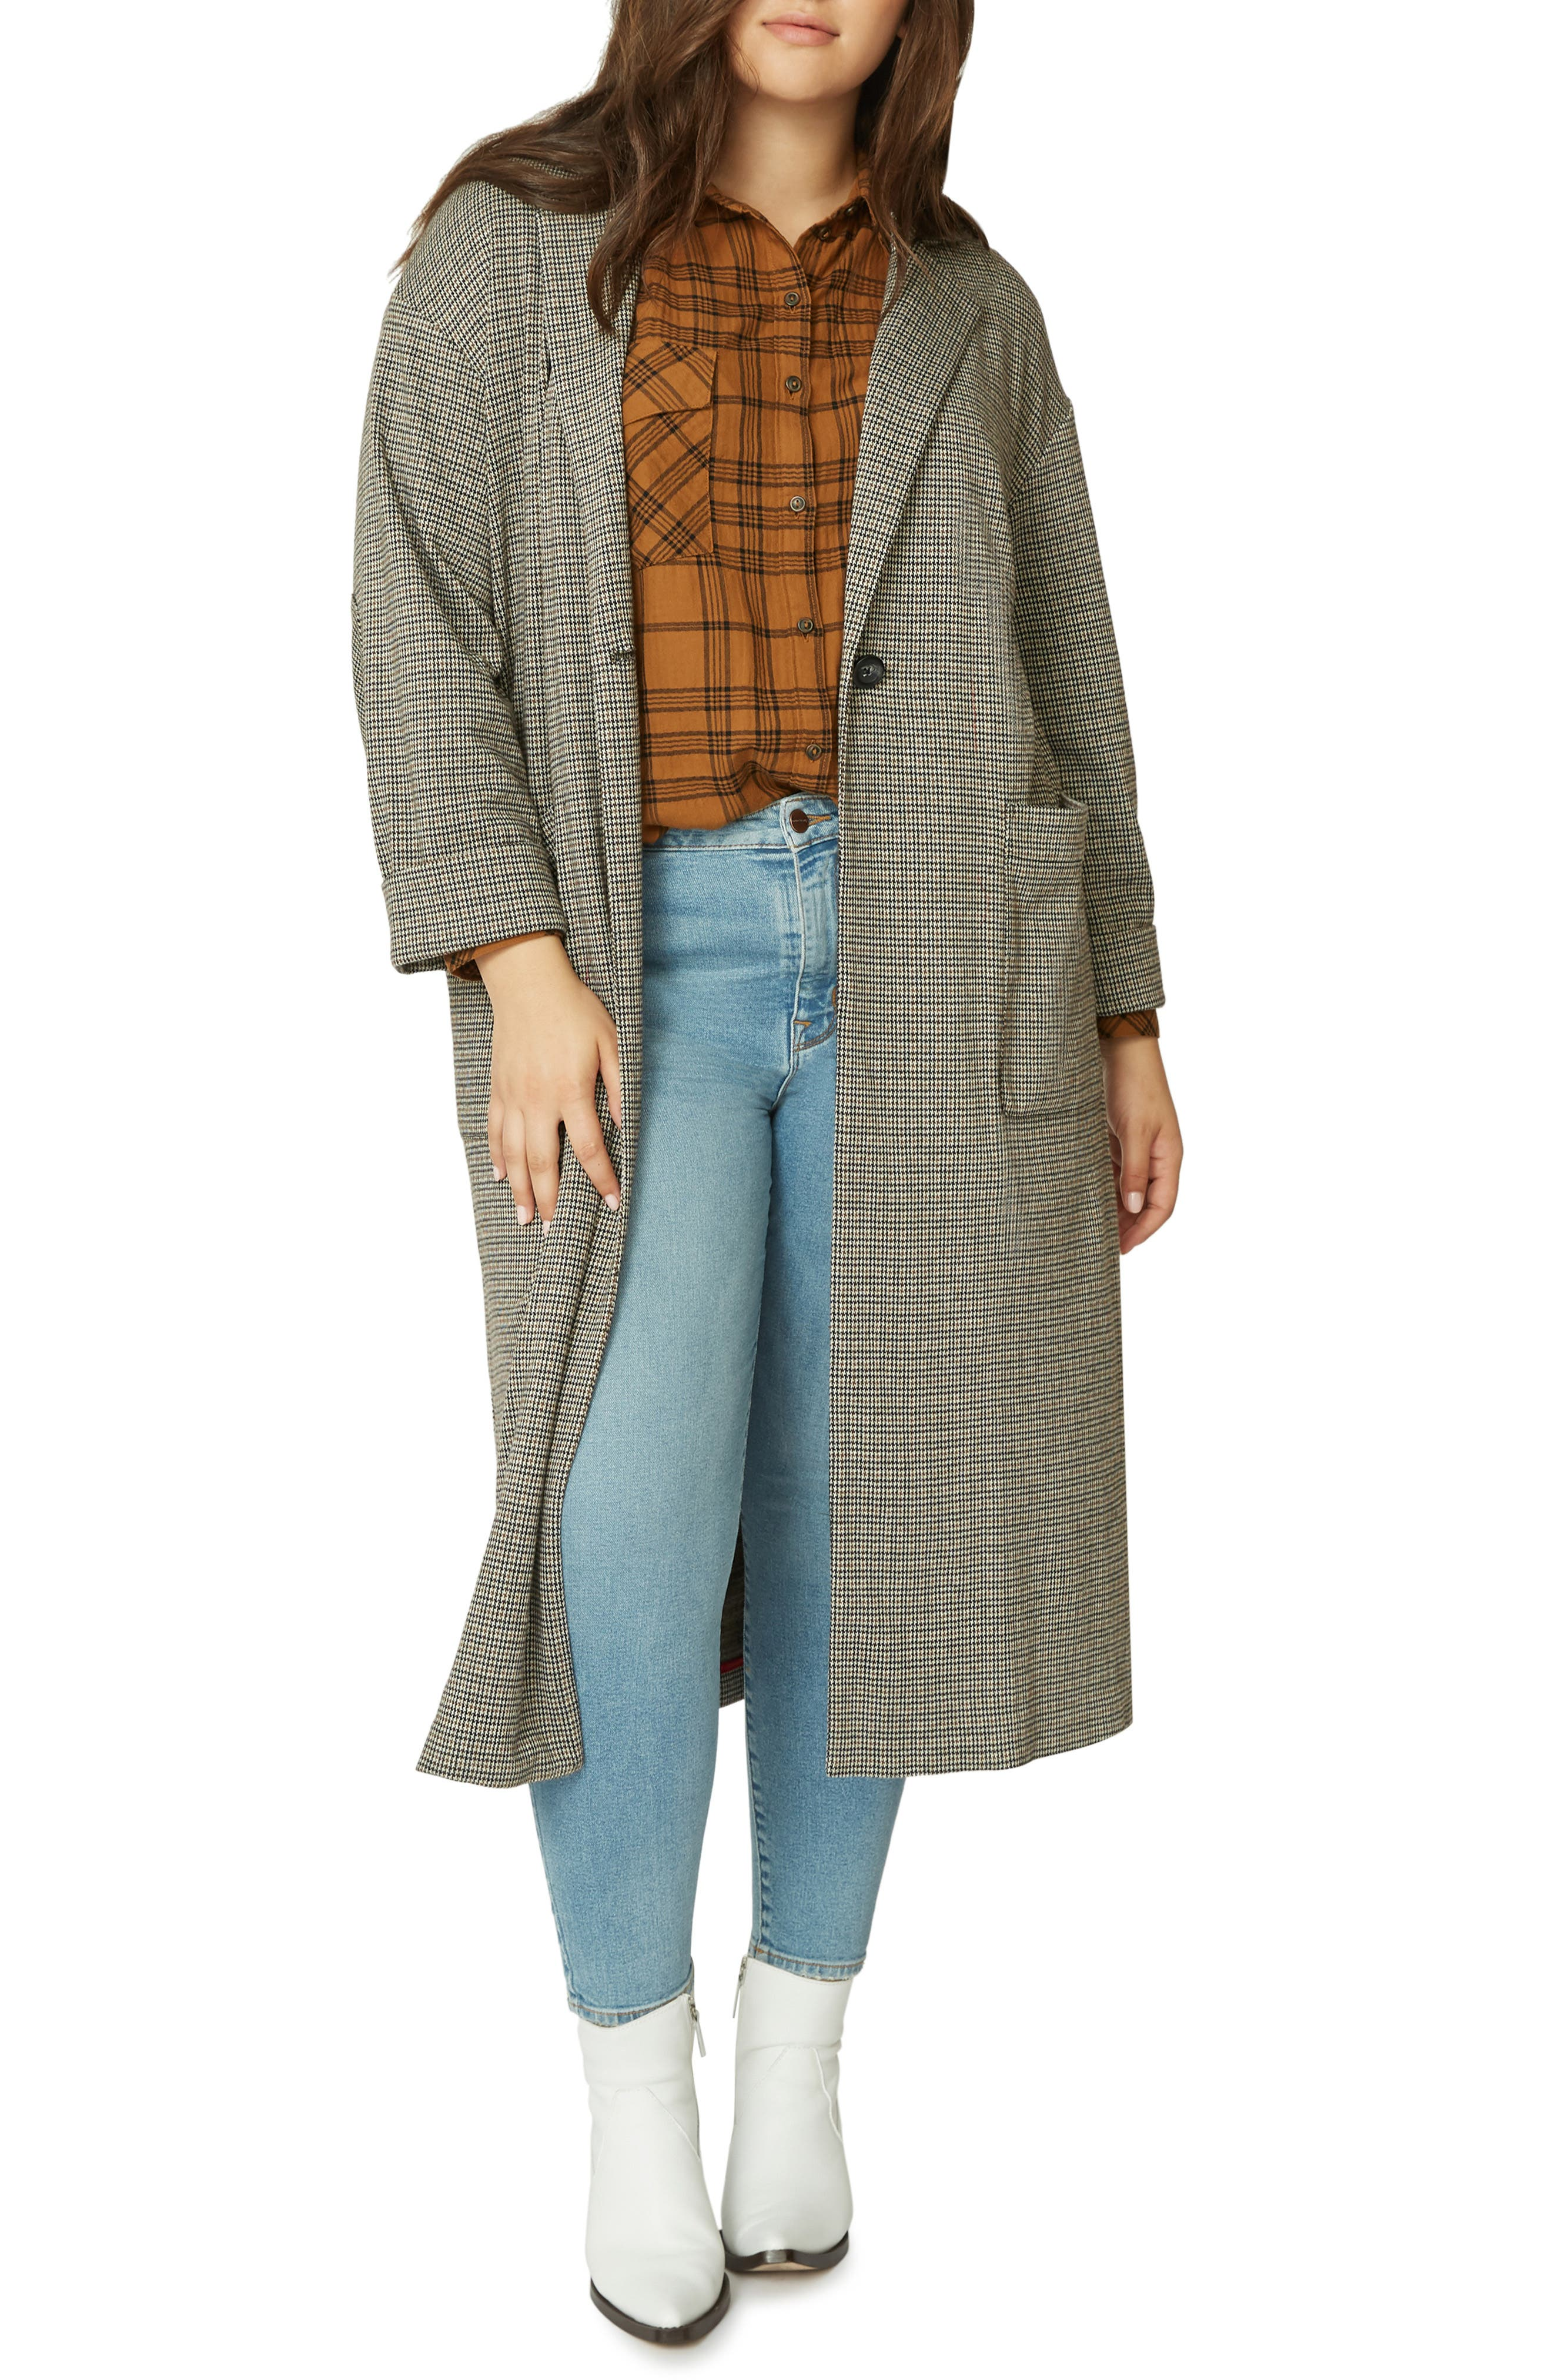 Bespoke Plaid Duster Jacket,                             Main thumbnail 1, color,                             KNT HND CK